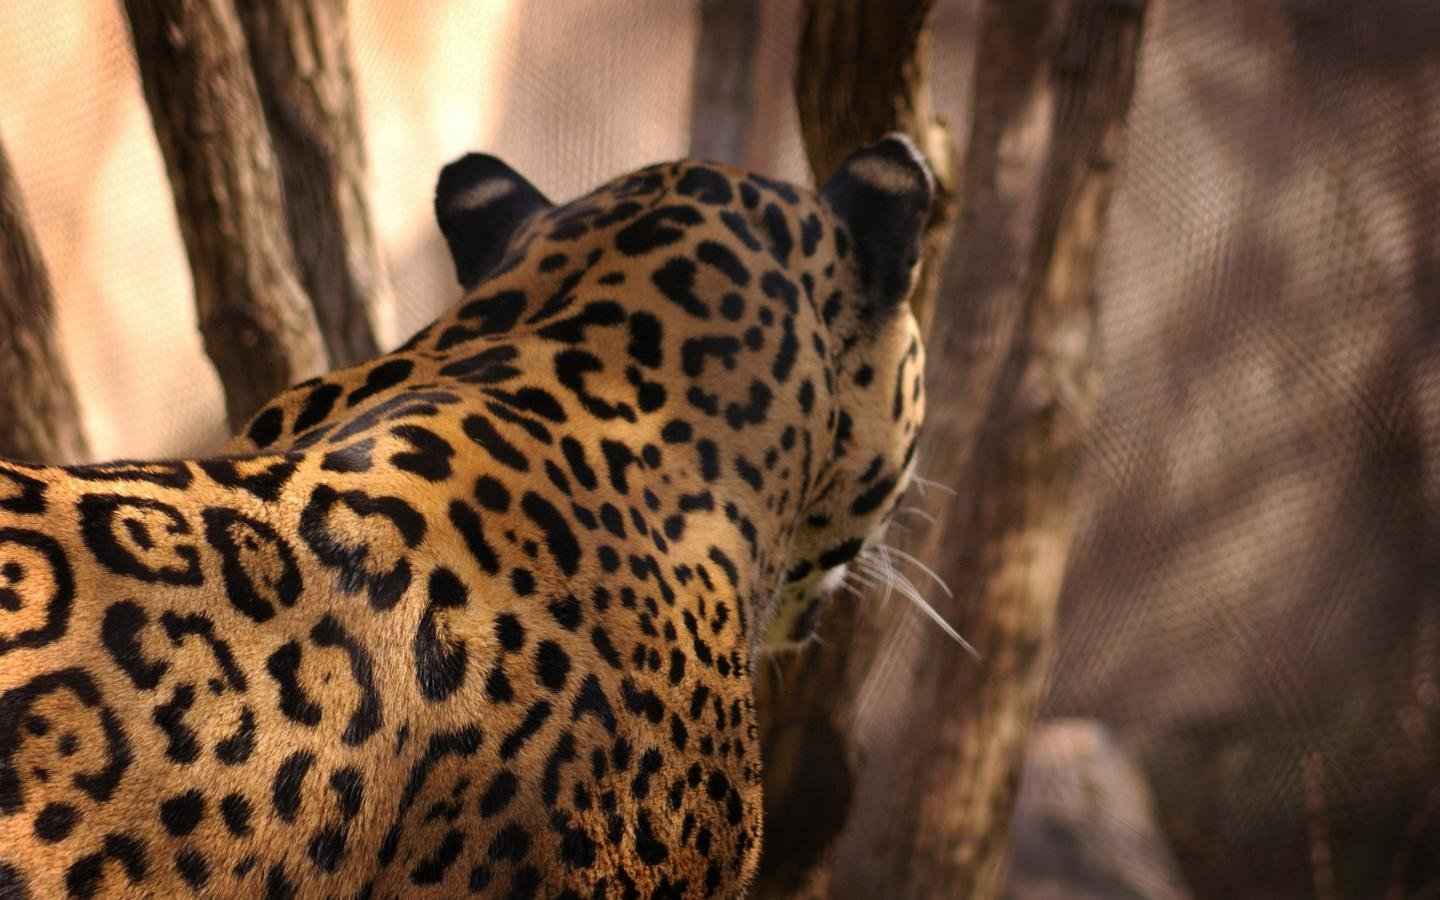 Download hd 1440x900 Jaguar PC background ID:30261 for free